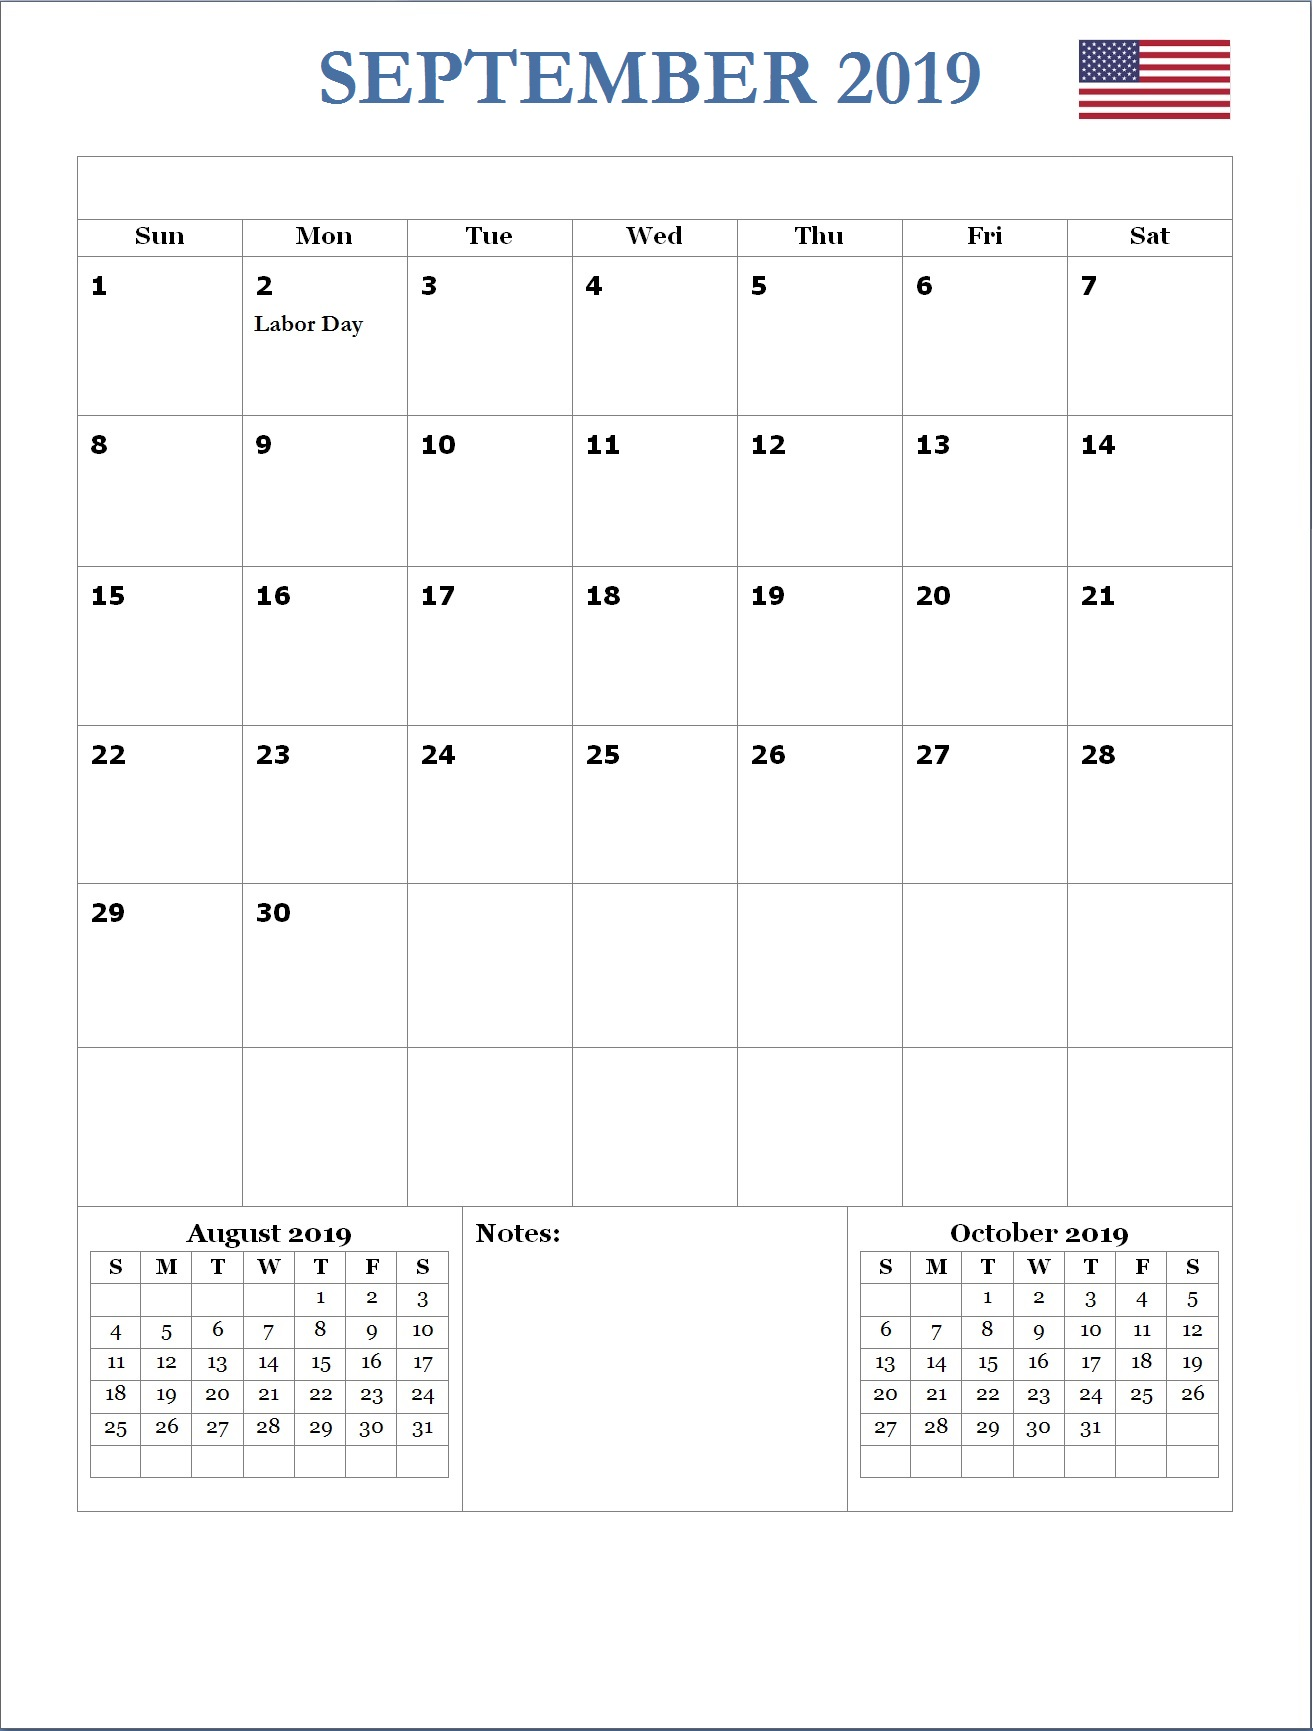 2019 September USA Holidays Calendar